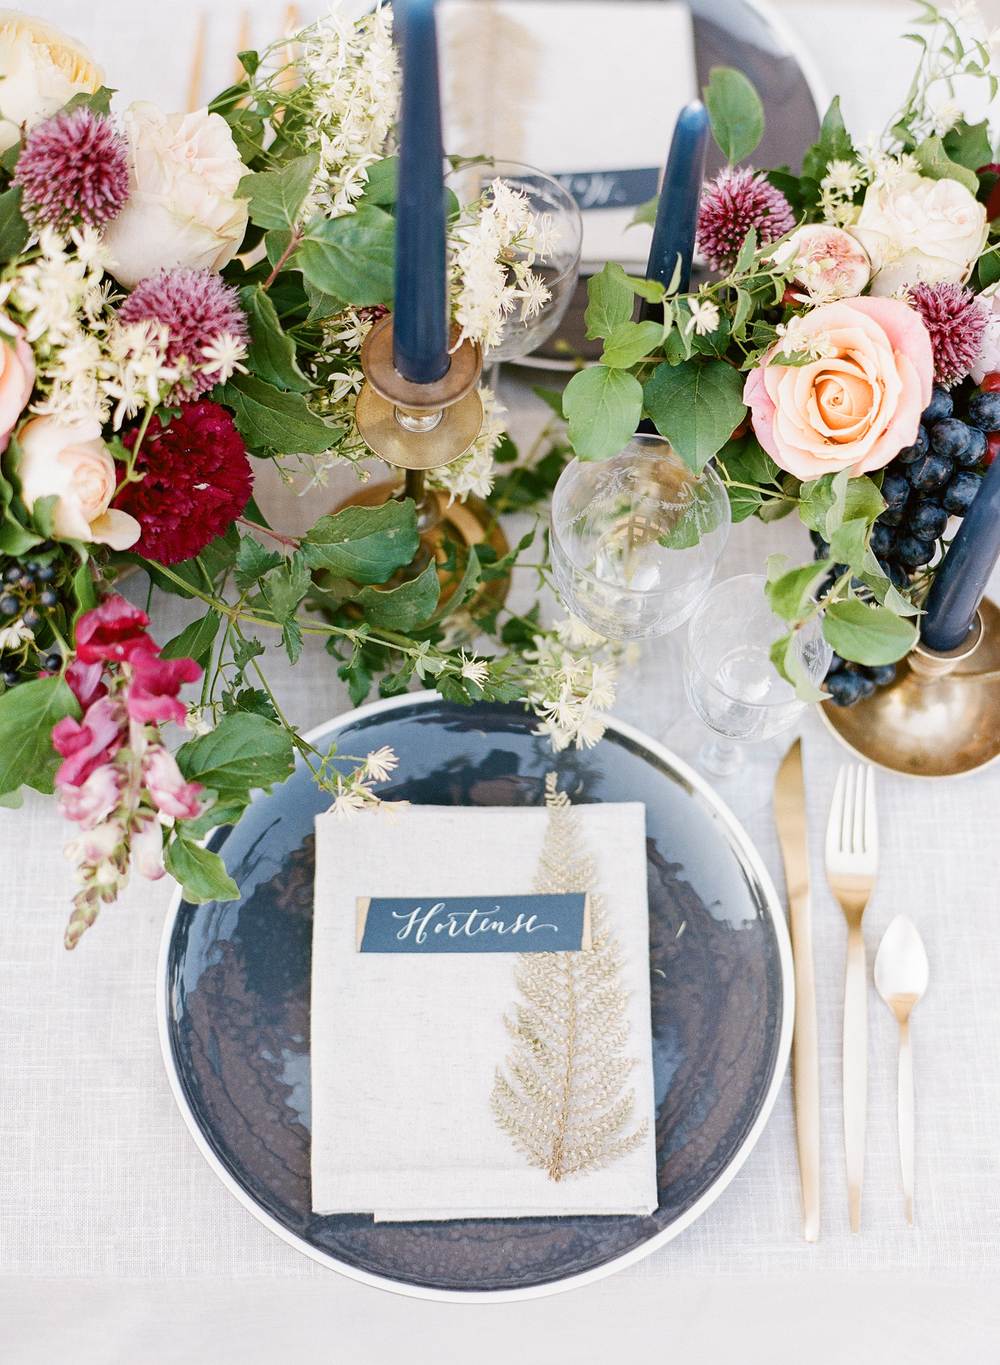 A monogrammed place setting features elegant gold details on a navy plate, surrounded by rustic, colorful place settings; photo by Sylvie Gil